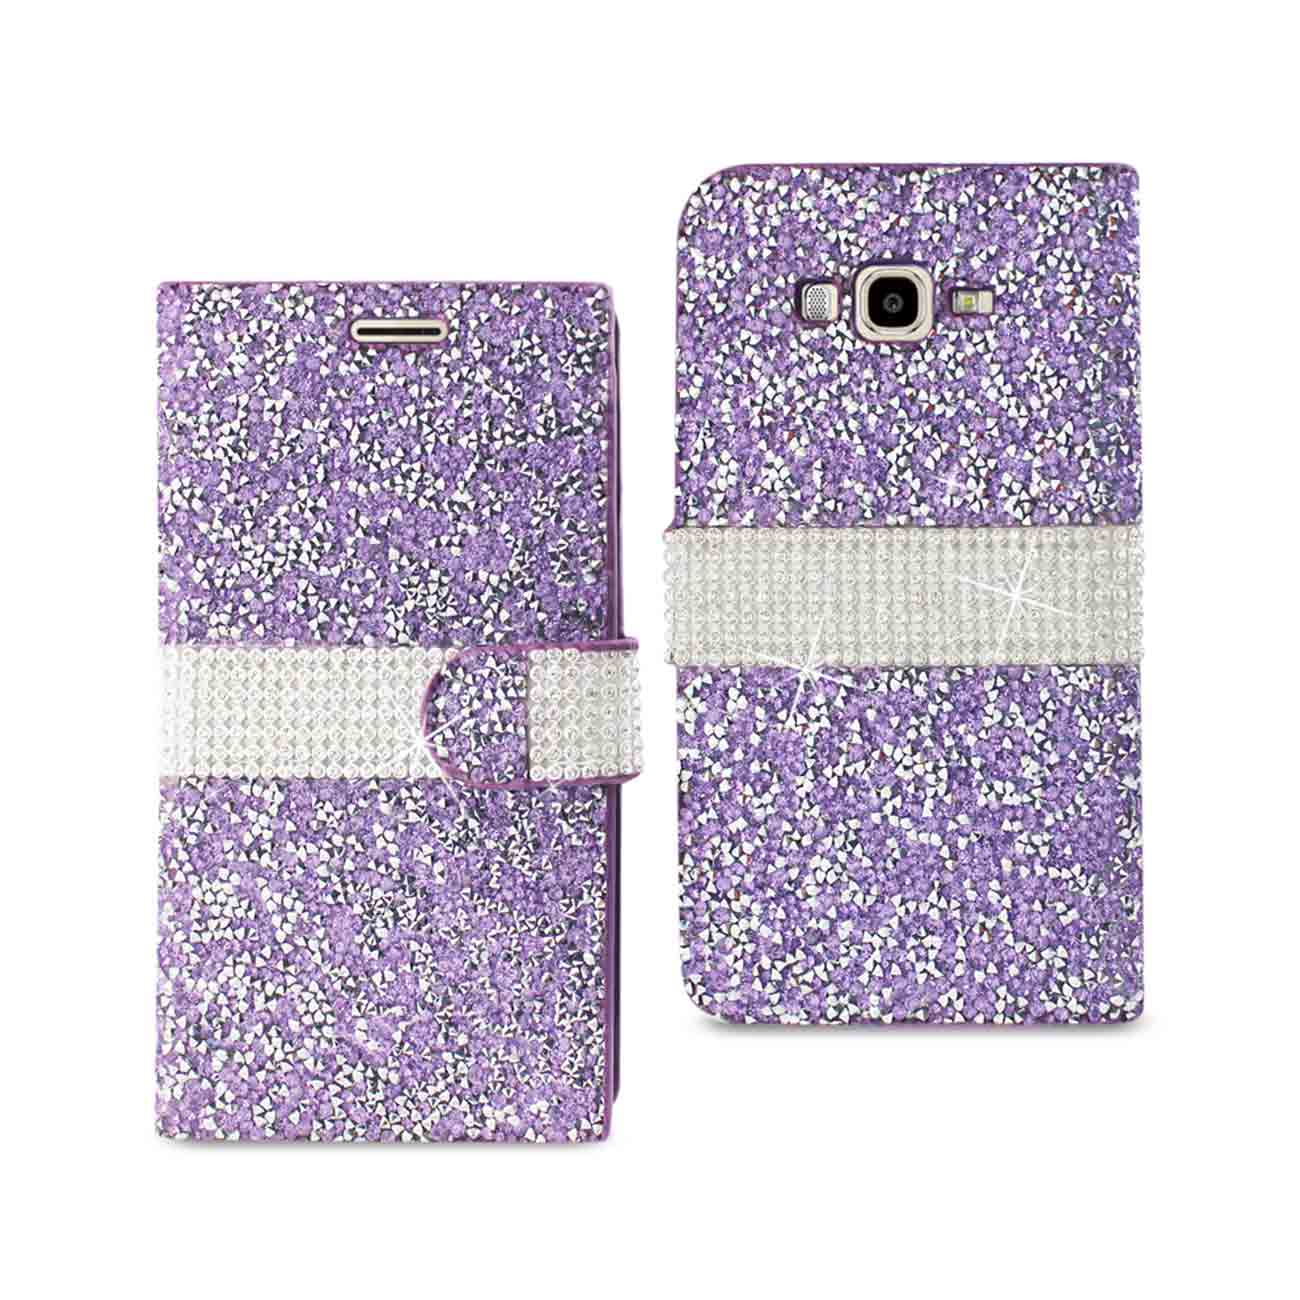 SAMSUNG GALAXY J7 JEWELRY RHINESTONE WALLET CASE IN PURPLE